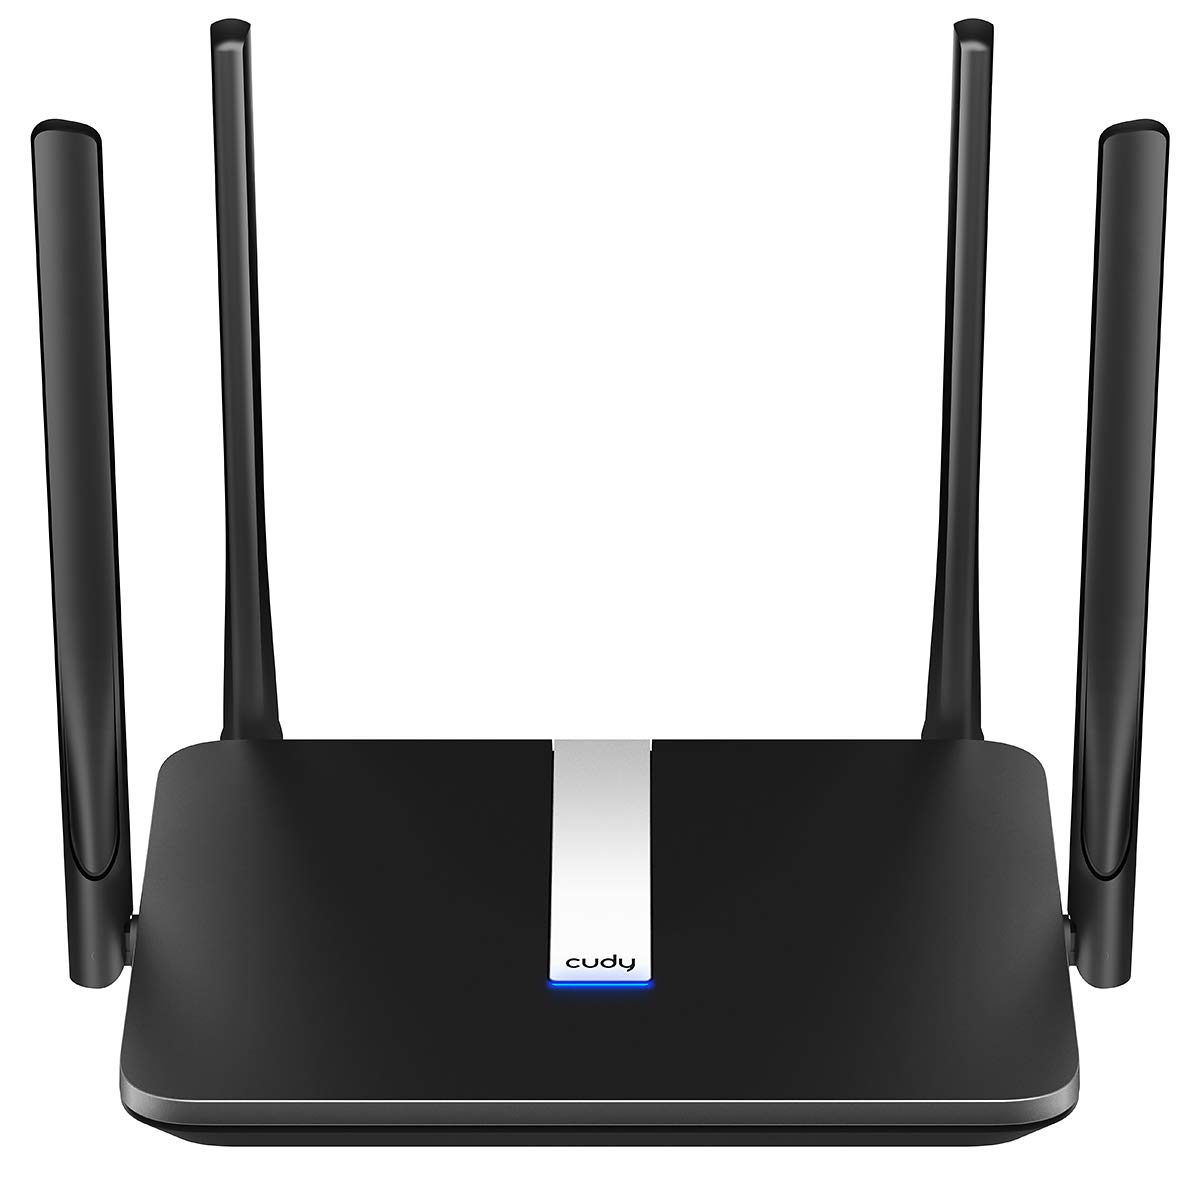 Cudy AC1200 Dual Band Unlocked 4G LTE Modem Router with SIM Card Slot